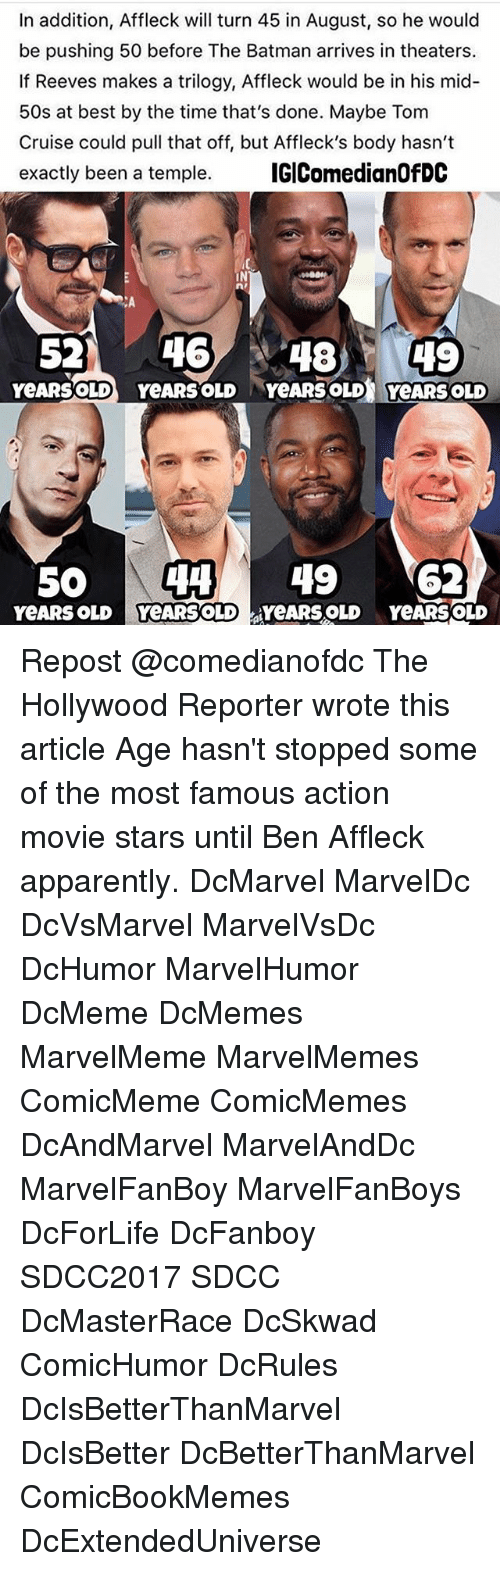 Apparently, Batman, and Memes: In addition, Affleck will turn 45 in August, so he would  be pushing 50 before The Batman arrives in theaters.  If Reeves makes a trilogy, Affleck would be in his mid  50s at best by the time that's done. Maybe Tom  Cruise could pull that off, but Affleck's body hasn't  exactly been a temple. IGIComedianOfDC  IN  CA  52 46 4849  YeARSOLD YeARS OLD YeARS OLD YeARS OLD  50 4 49 62 Repost @comedianofdc The Hollywood Reporter wrote this article Age hasn't stopped some of the most famous action movie stars until Ben Affleck apparently. DcMarvel MarvelDc DcVsMarvel MarvelVsDc DcHumor MarvelHumor DcMeme DcMemes MarvelMeme MarvelMemes ComicMeme ComicMemes DcAndMarvel MarvelAndDc MarvelFanBoy MarvelFanBoys DcForLife DcFanboy SDCC2017 SDCC DcMasterRace DcSkwad ComicHumor DcRules DcIsBetterThanMarvel DcIsBetter DcBetterThanMarvel ComicBookMemes DcExtendedUniverse